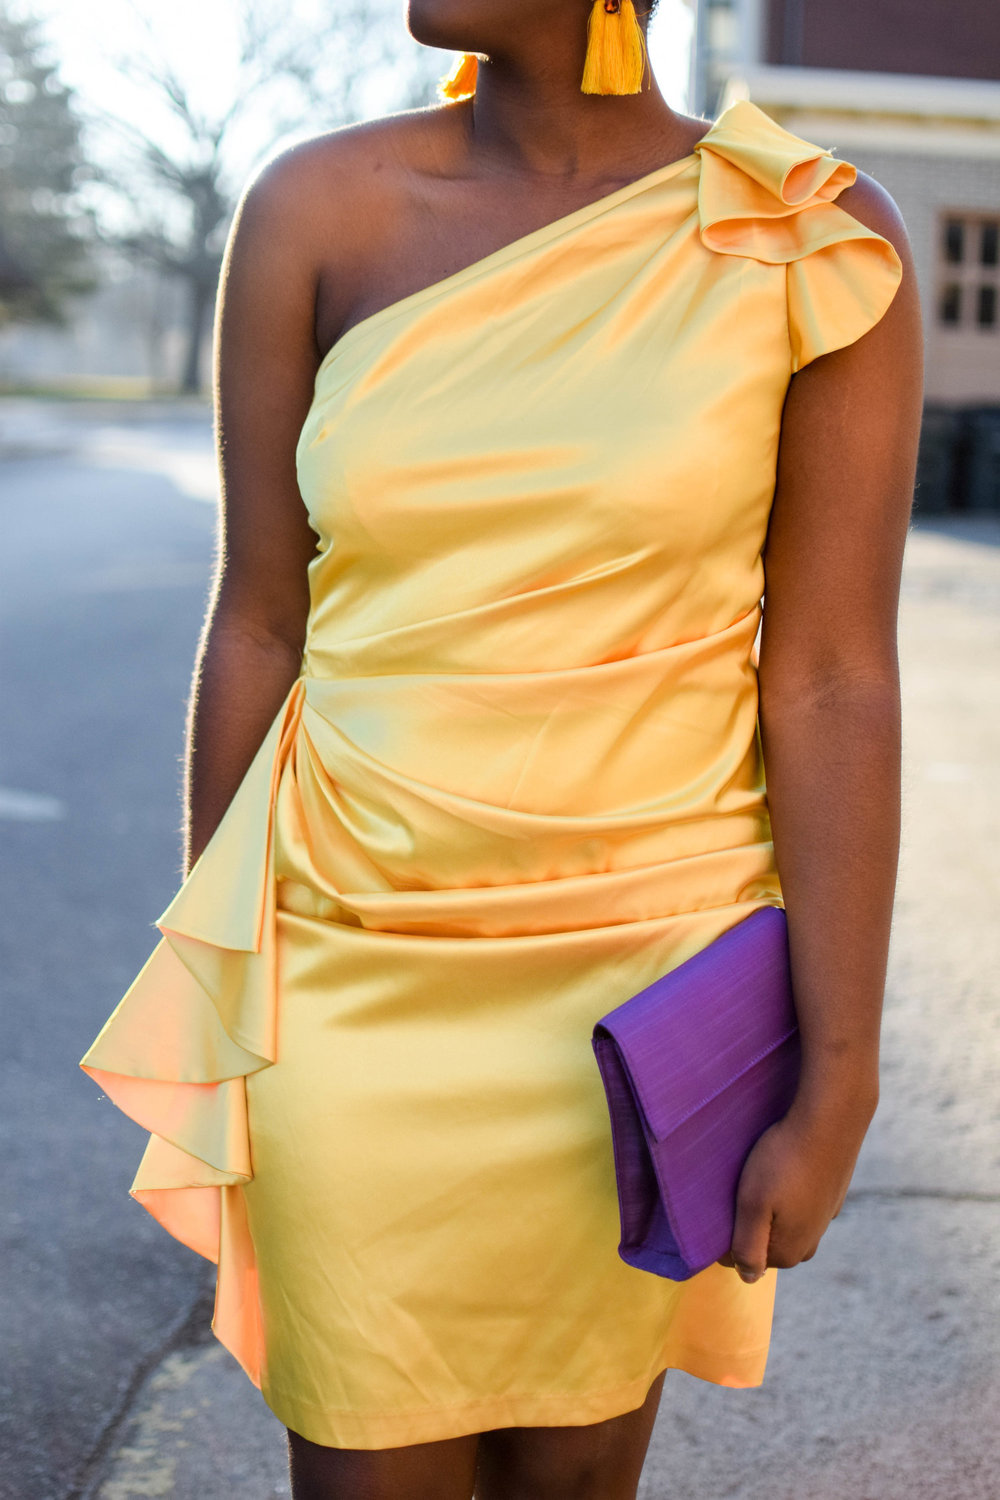 The Stunning Canary Yellow Dress.